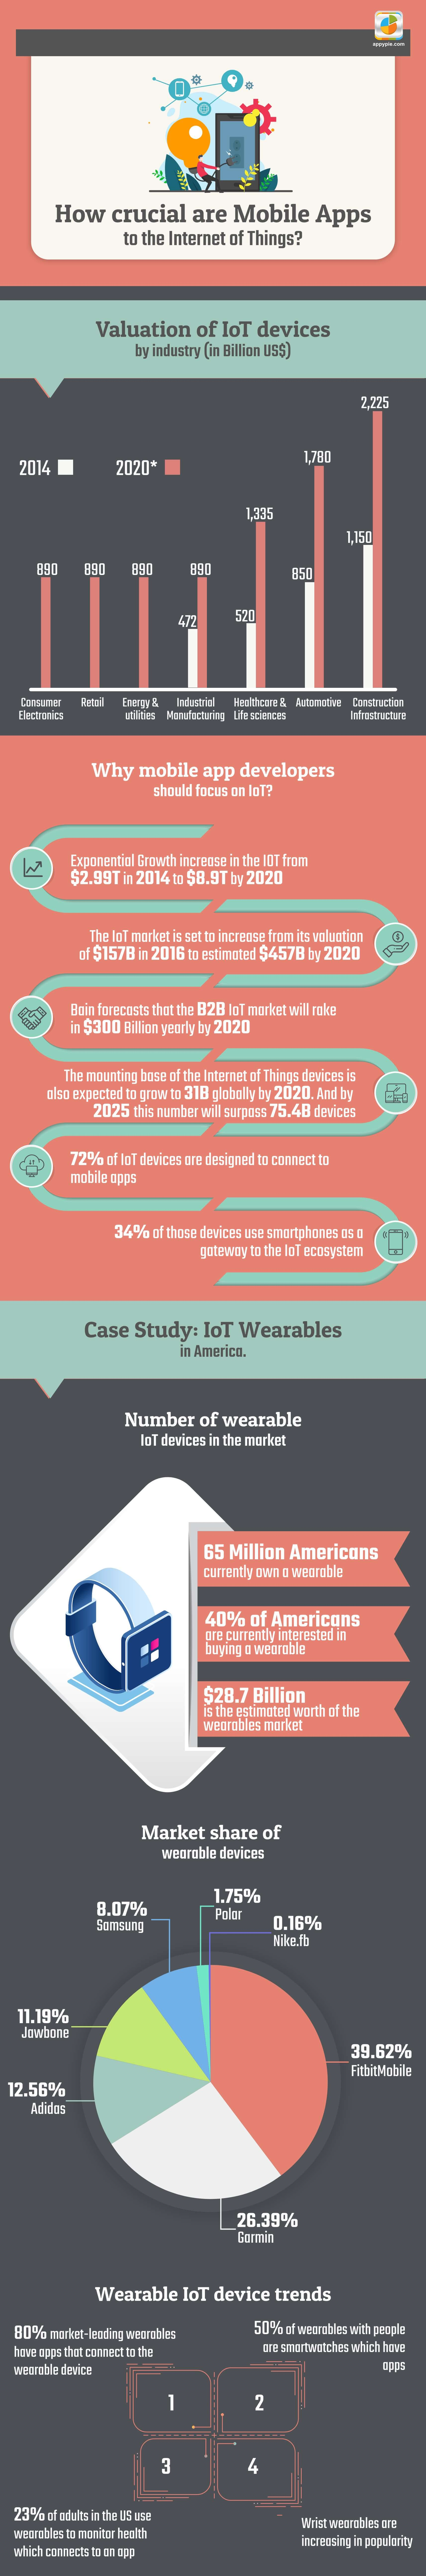 How Mobile Apps Impact the Internet of Things